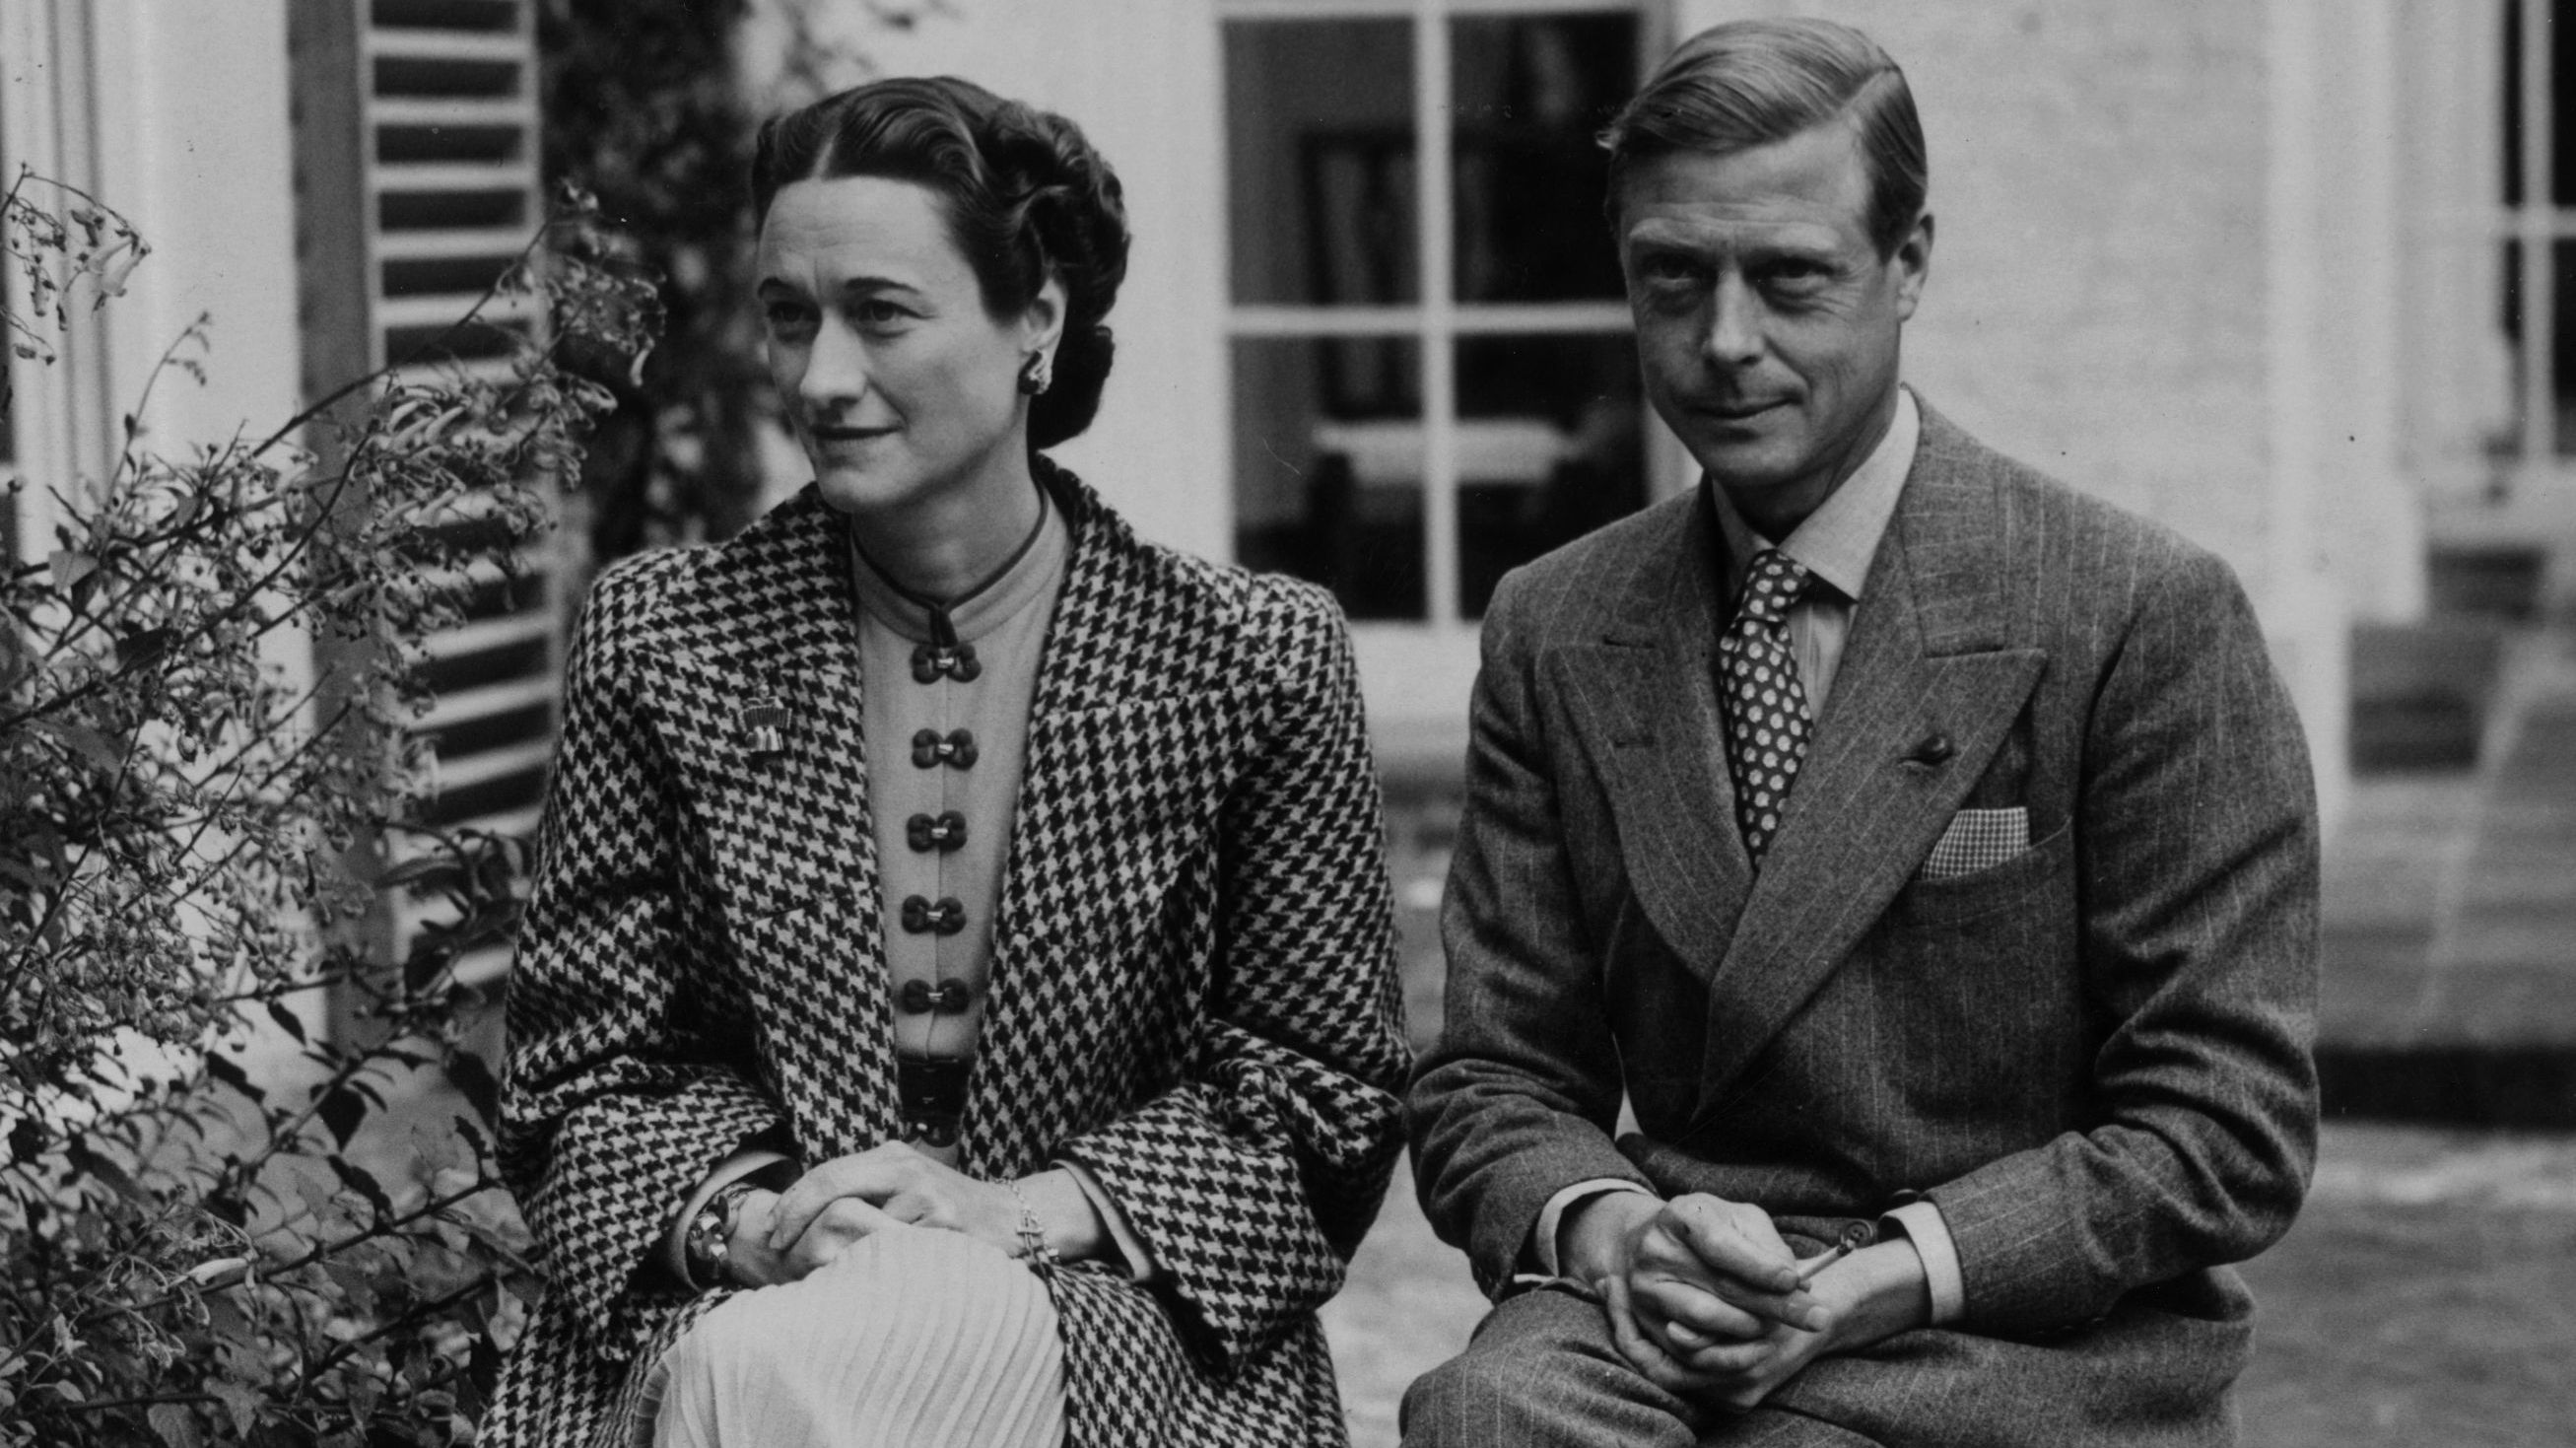 A Signed Copy of Edward VIII's Abdication Speech Is Hitting the Auction Block